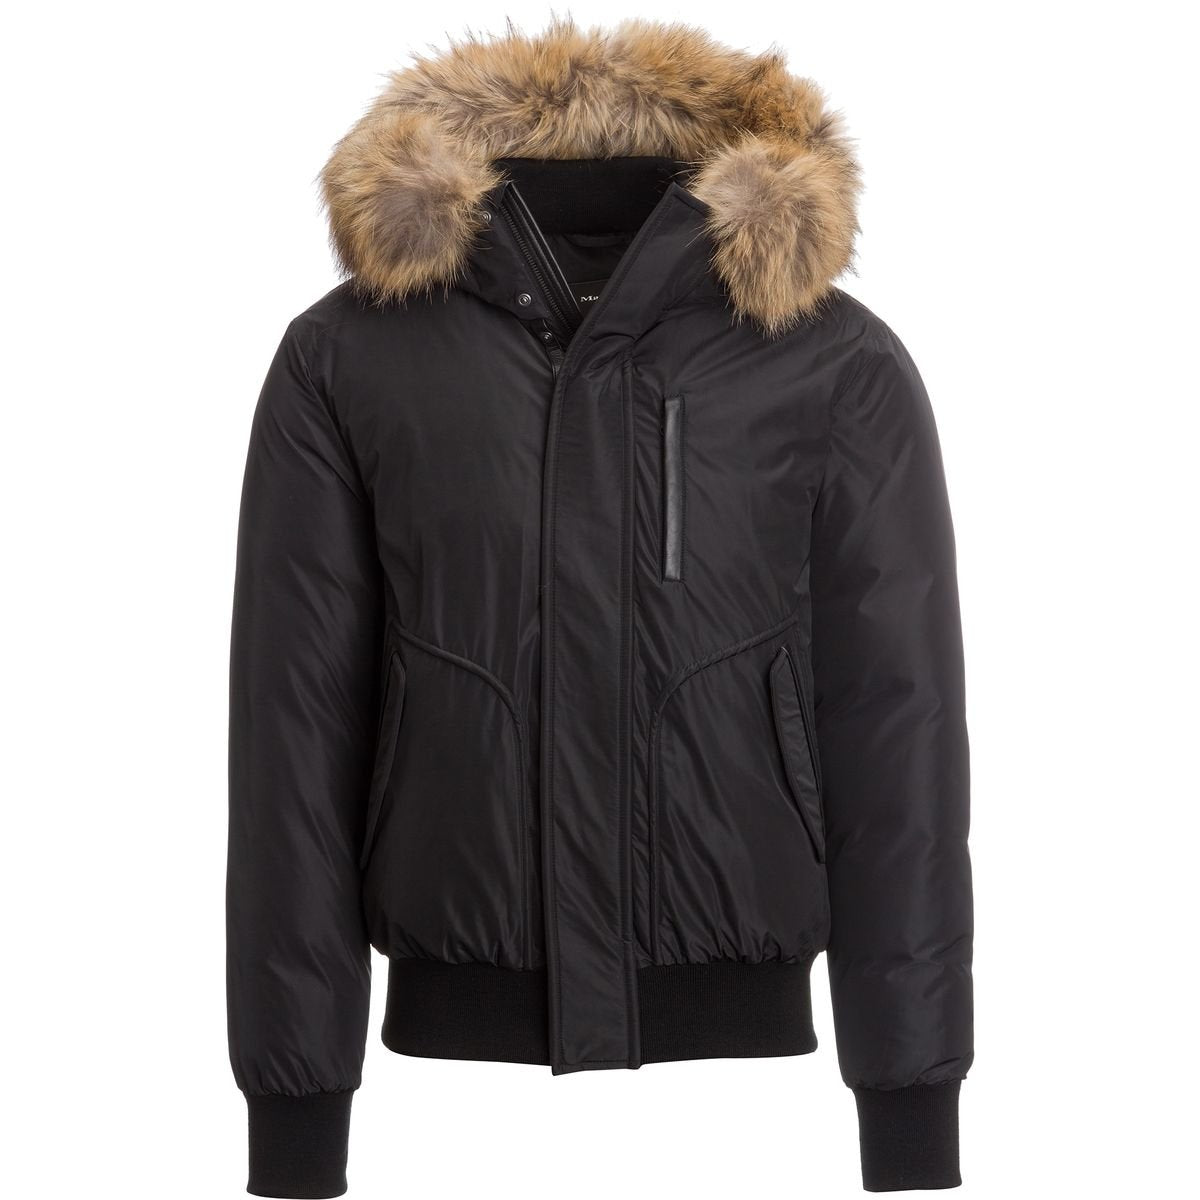 Mackage WINTER DOWN BOMBER JACKET WITH FUR FLORIAN-BLACK